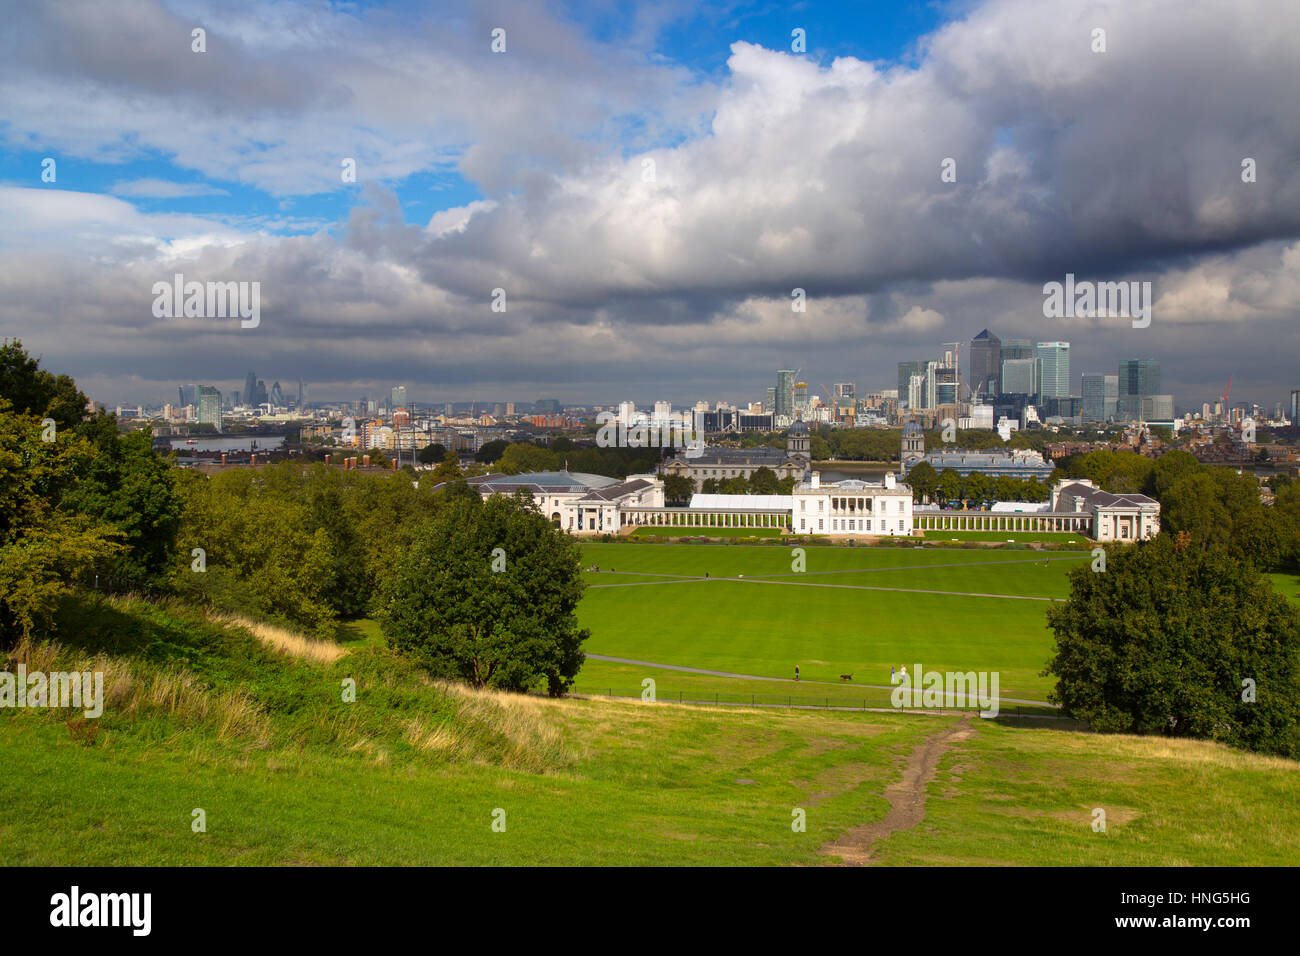 Canary Wharfe & Central London from Greenwich Park - Stock Image